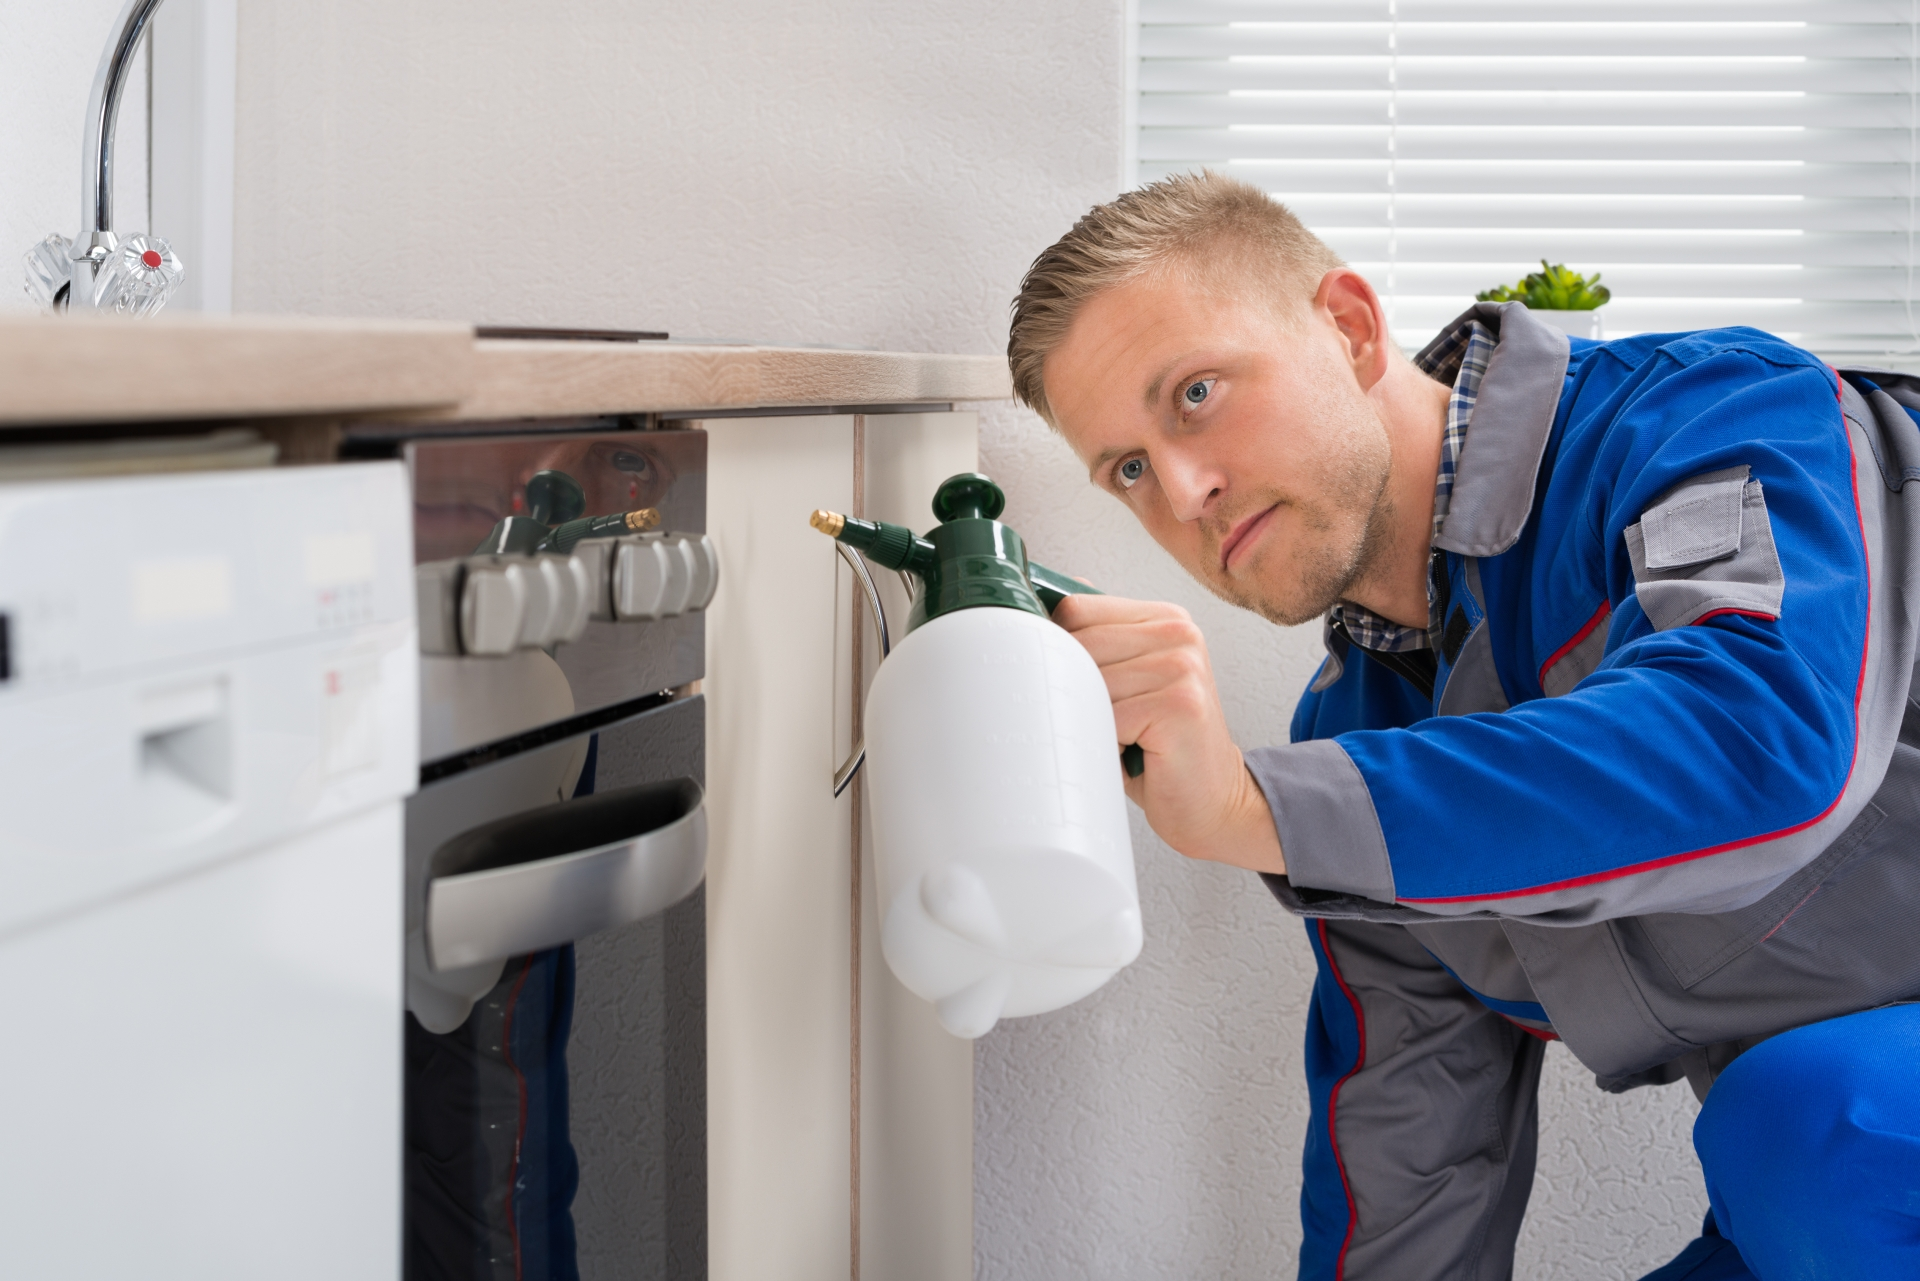 Pest Inspection, Pest Control in Bromley, Bickley, Downham, BR1. Call Now 020 8166 9746